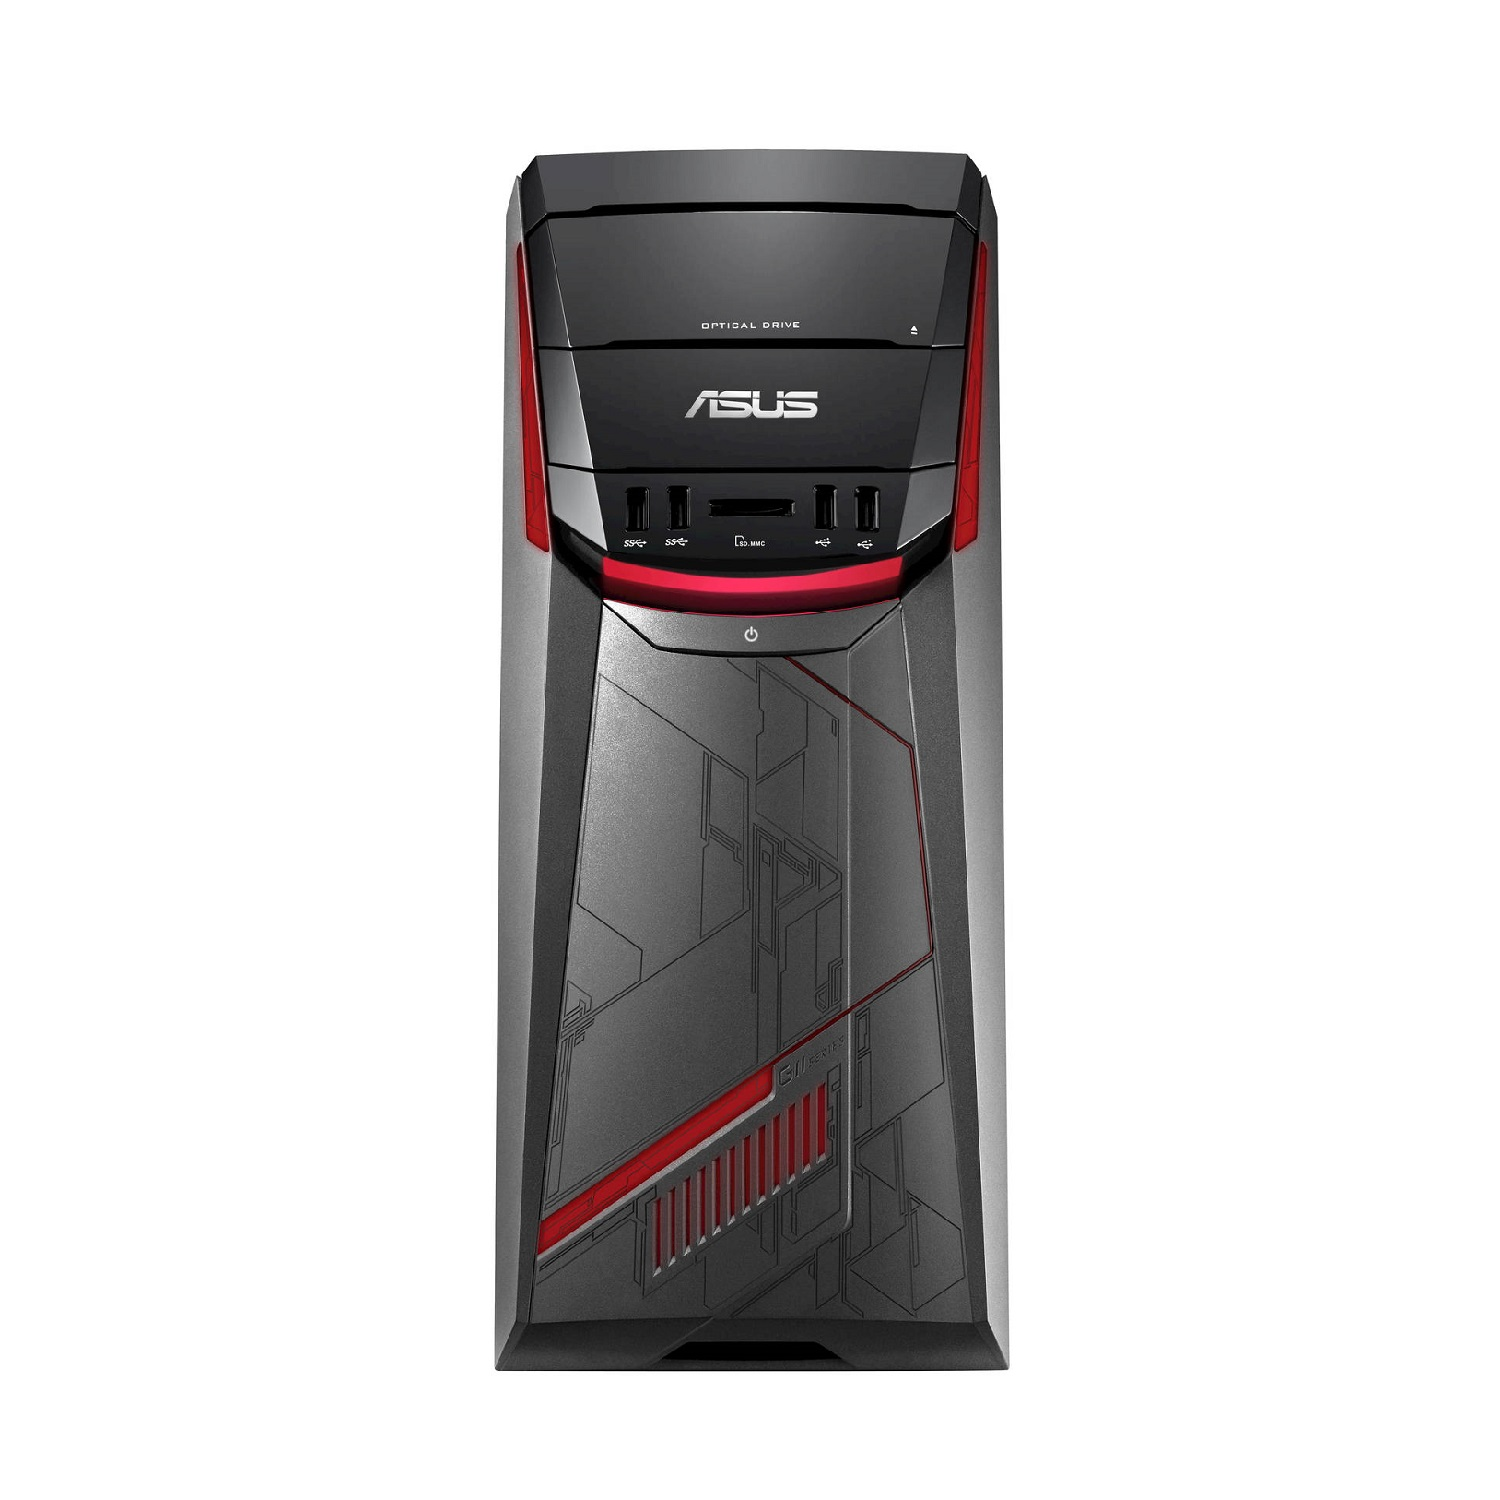 Asus G11CD-WB51 Desktop PC with Intel i5-6400, 8GB 1TB HDD by ASUS